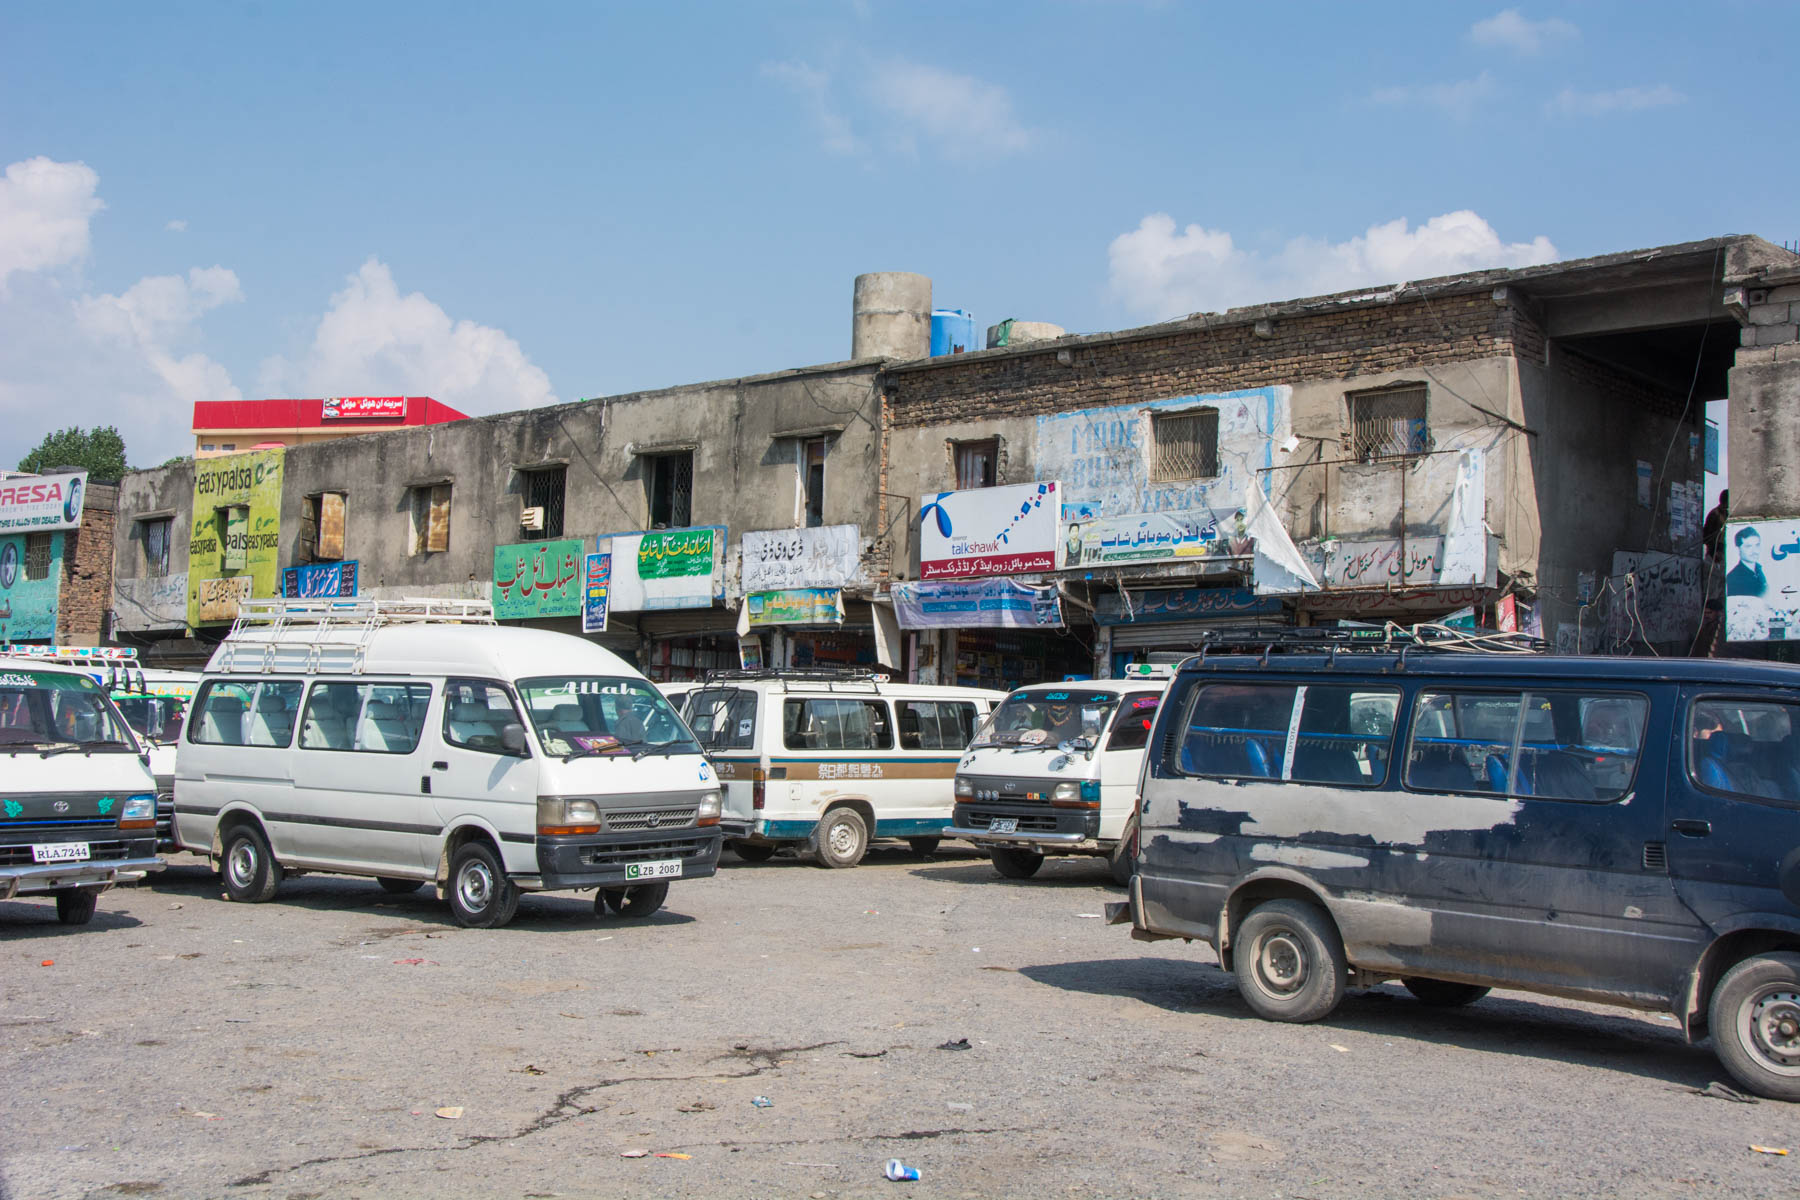 The minibus terminal for buses to Naran in Mansehra, Pakistan.